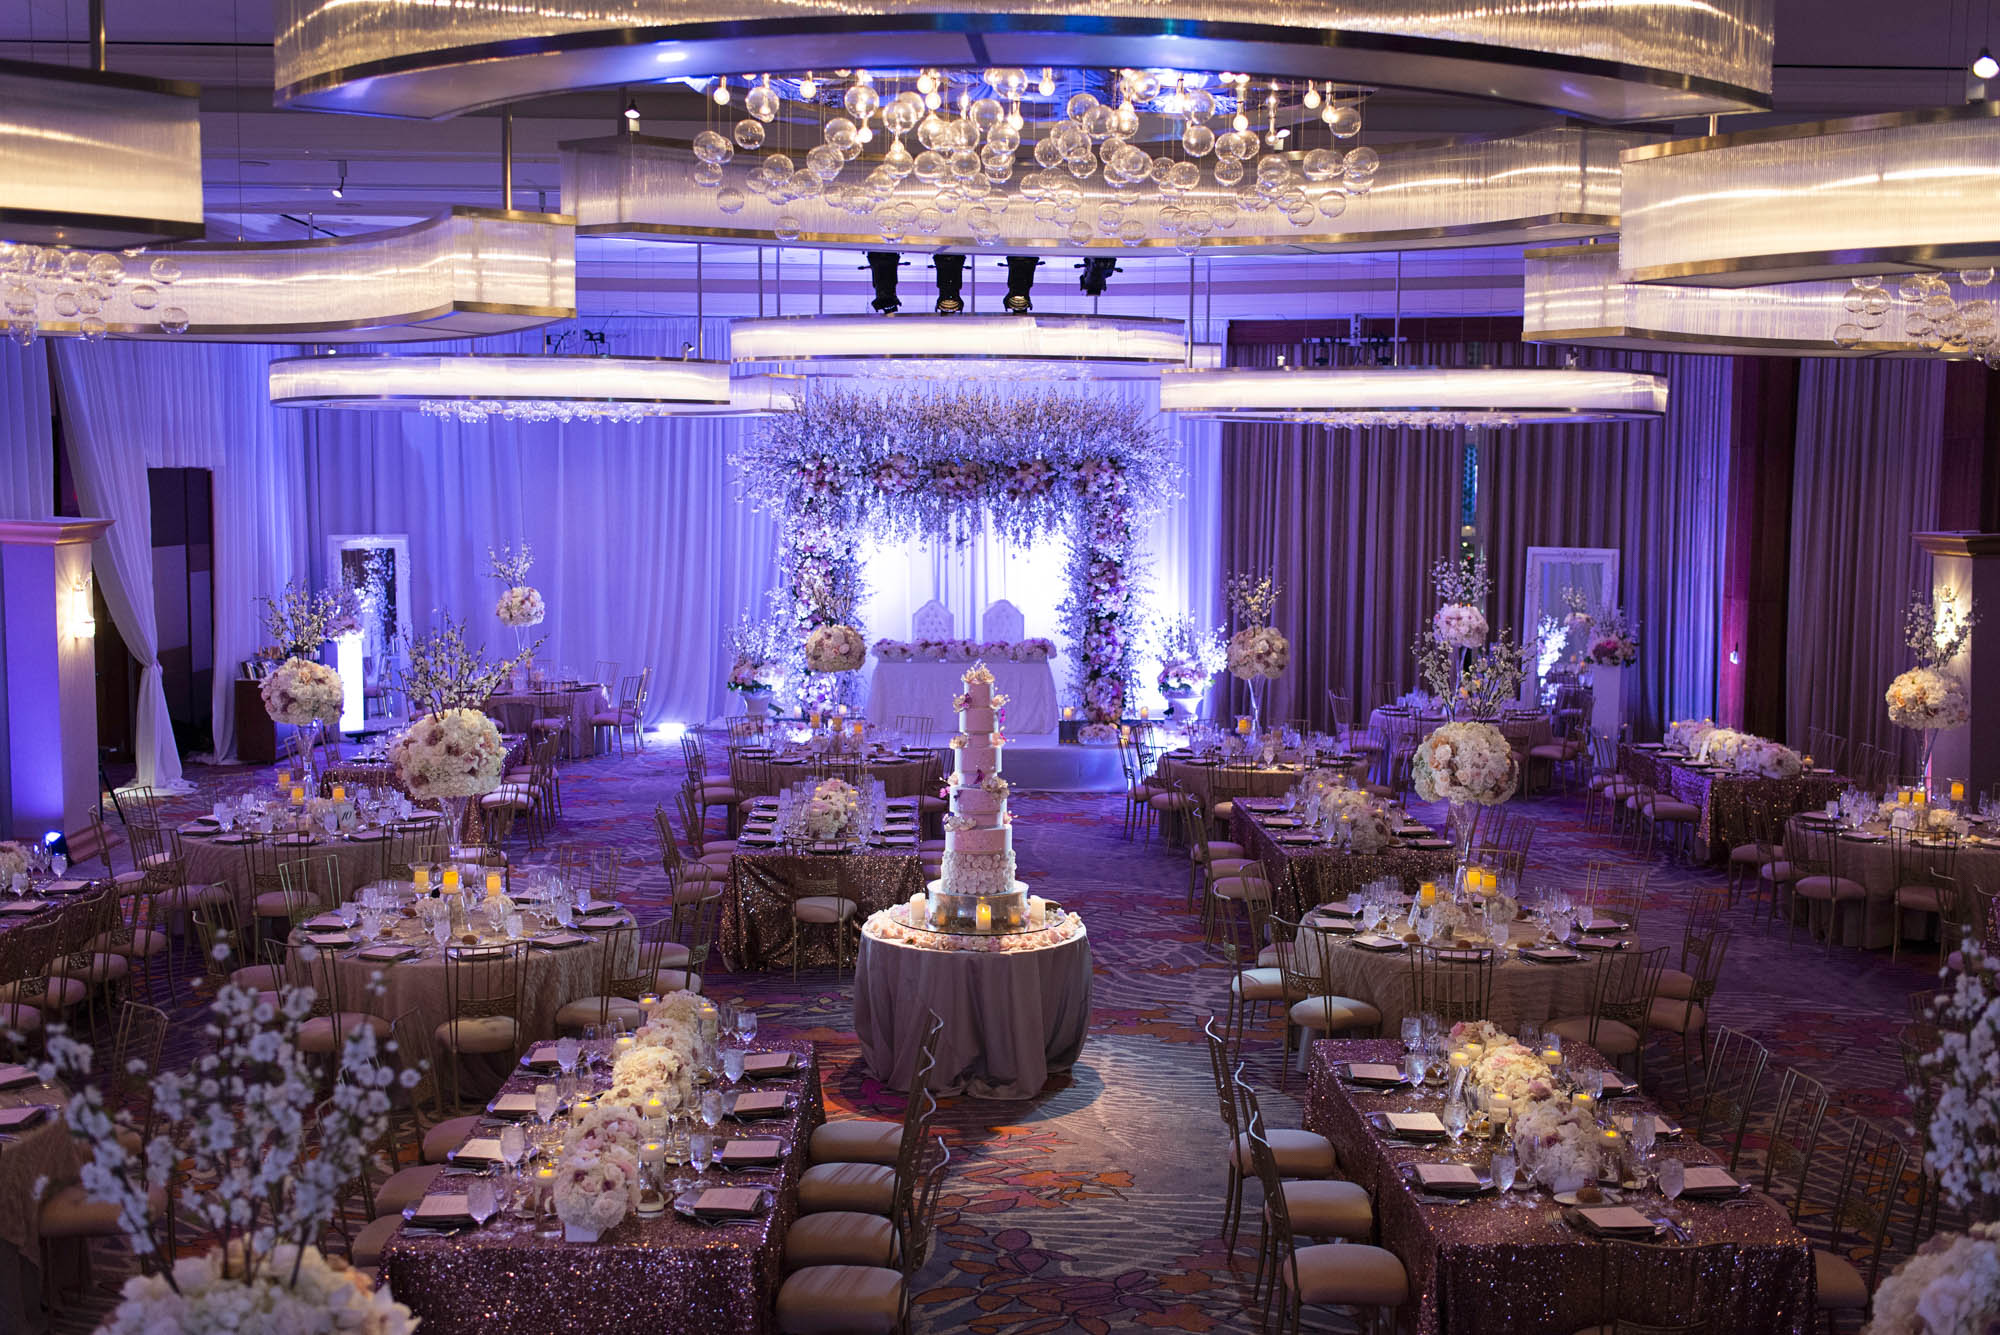 9 tiered wedding cake in the middle of a wedding reception at Mandarin Oriental. Las Vegas Wedding Planner Andrea Eppolito. Photo by AltF.